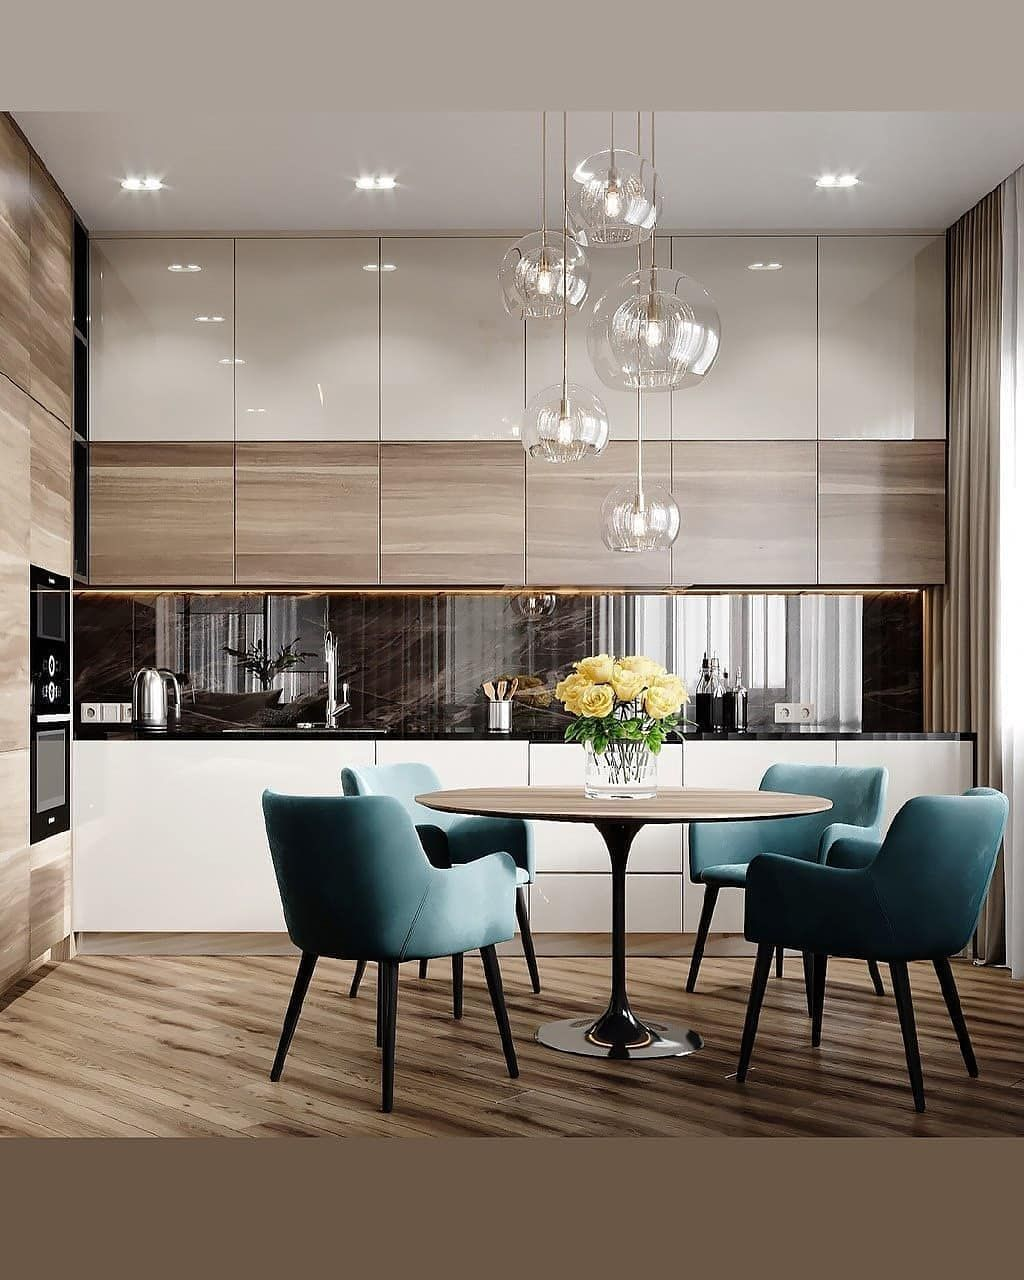 Get started on liberating your interior design at decoraid in city ny sf chi dc bos ldn kitchenfur  also rh pinterest